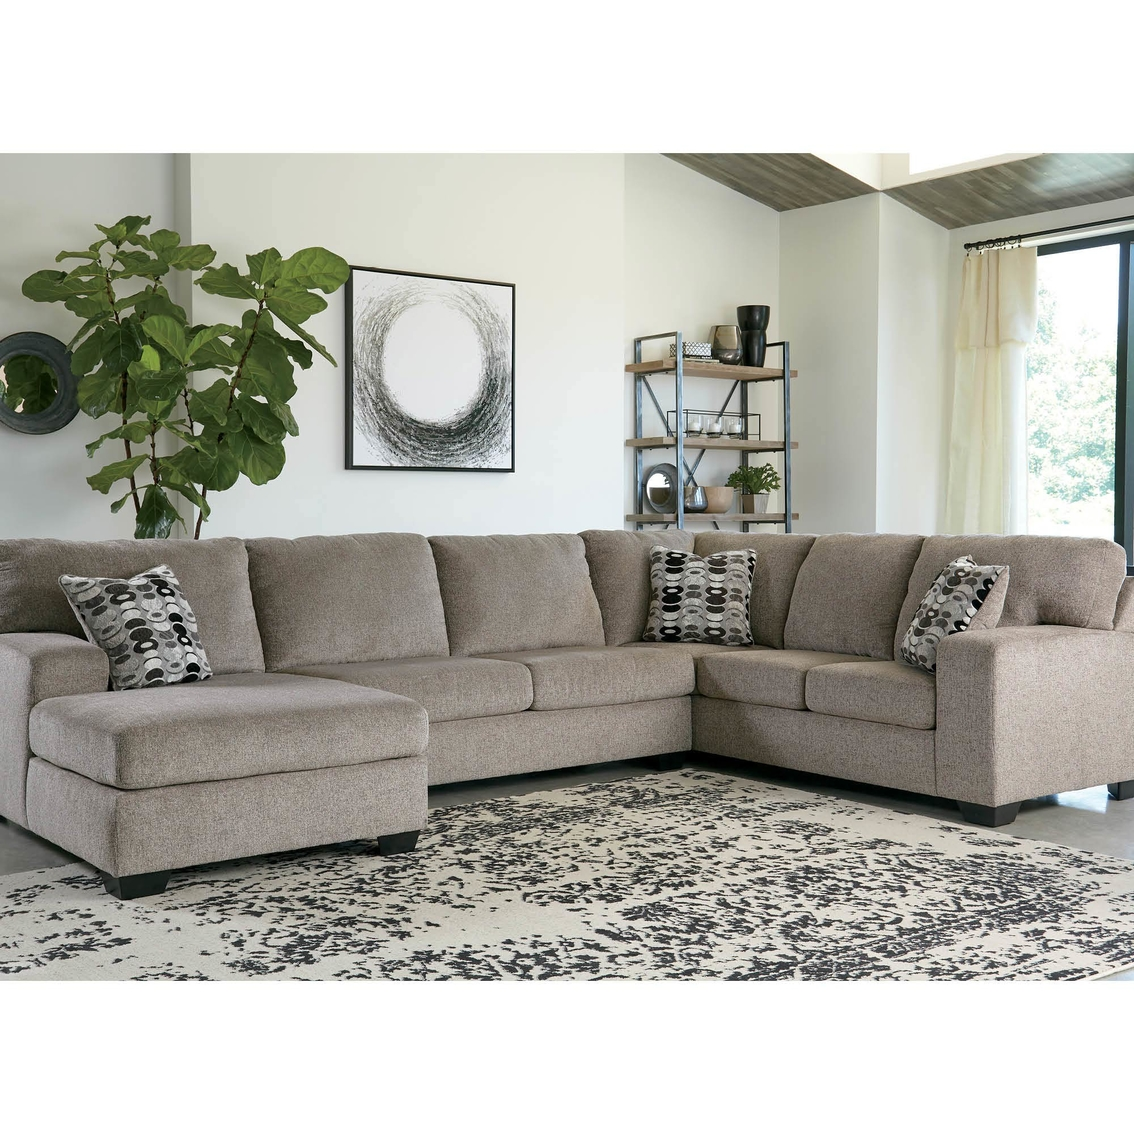 Signature Design By Ashley Ballinasloe 3 Pc. Sectional Laf ...